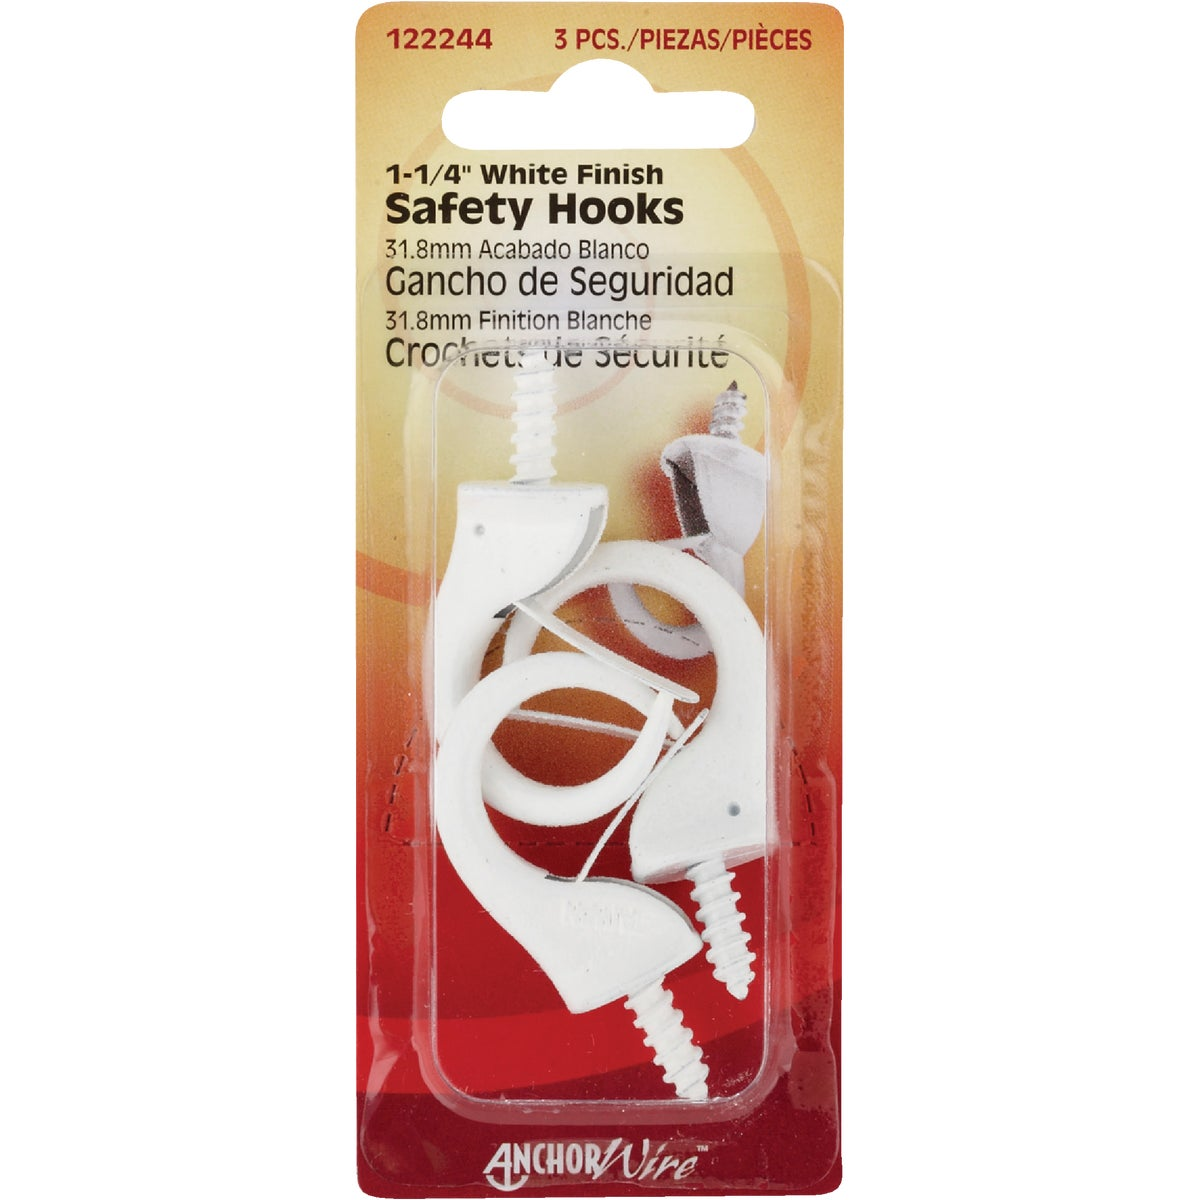 WHITE SAFETY HOOK - 122244 by Hillman Fastener